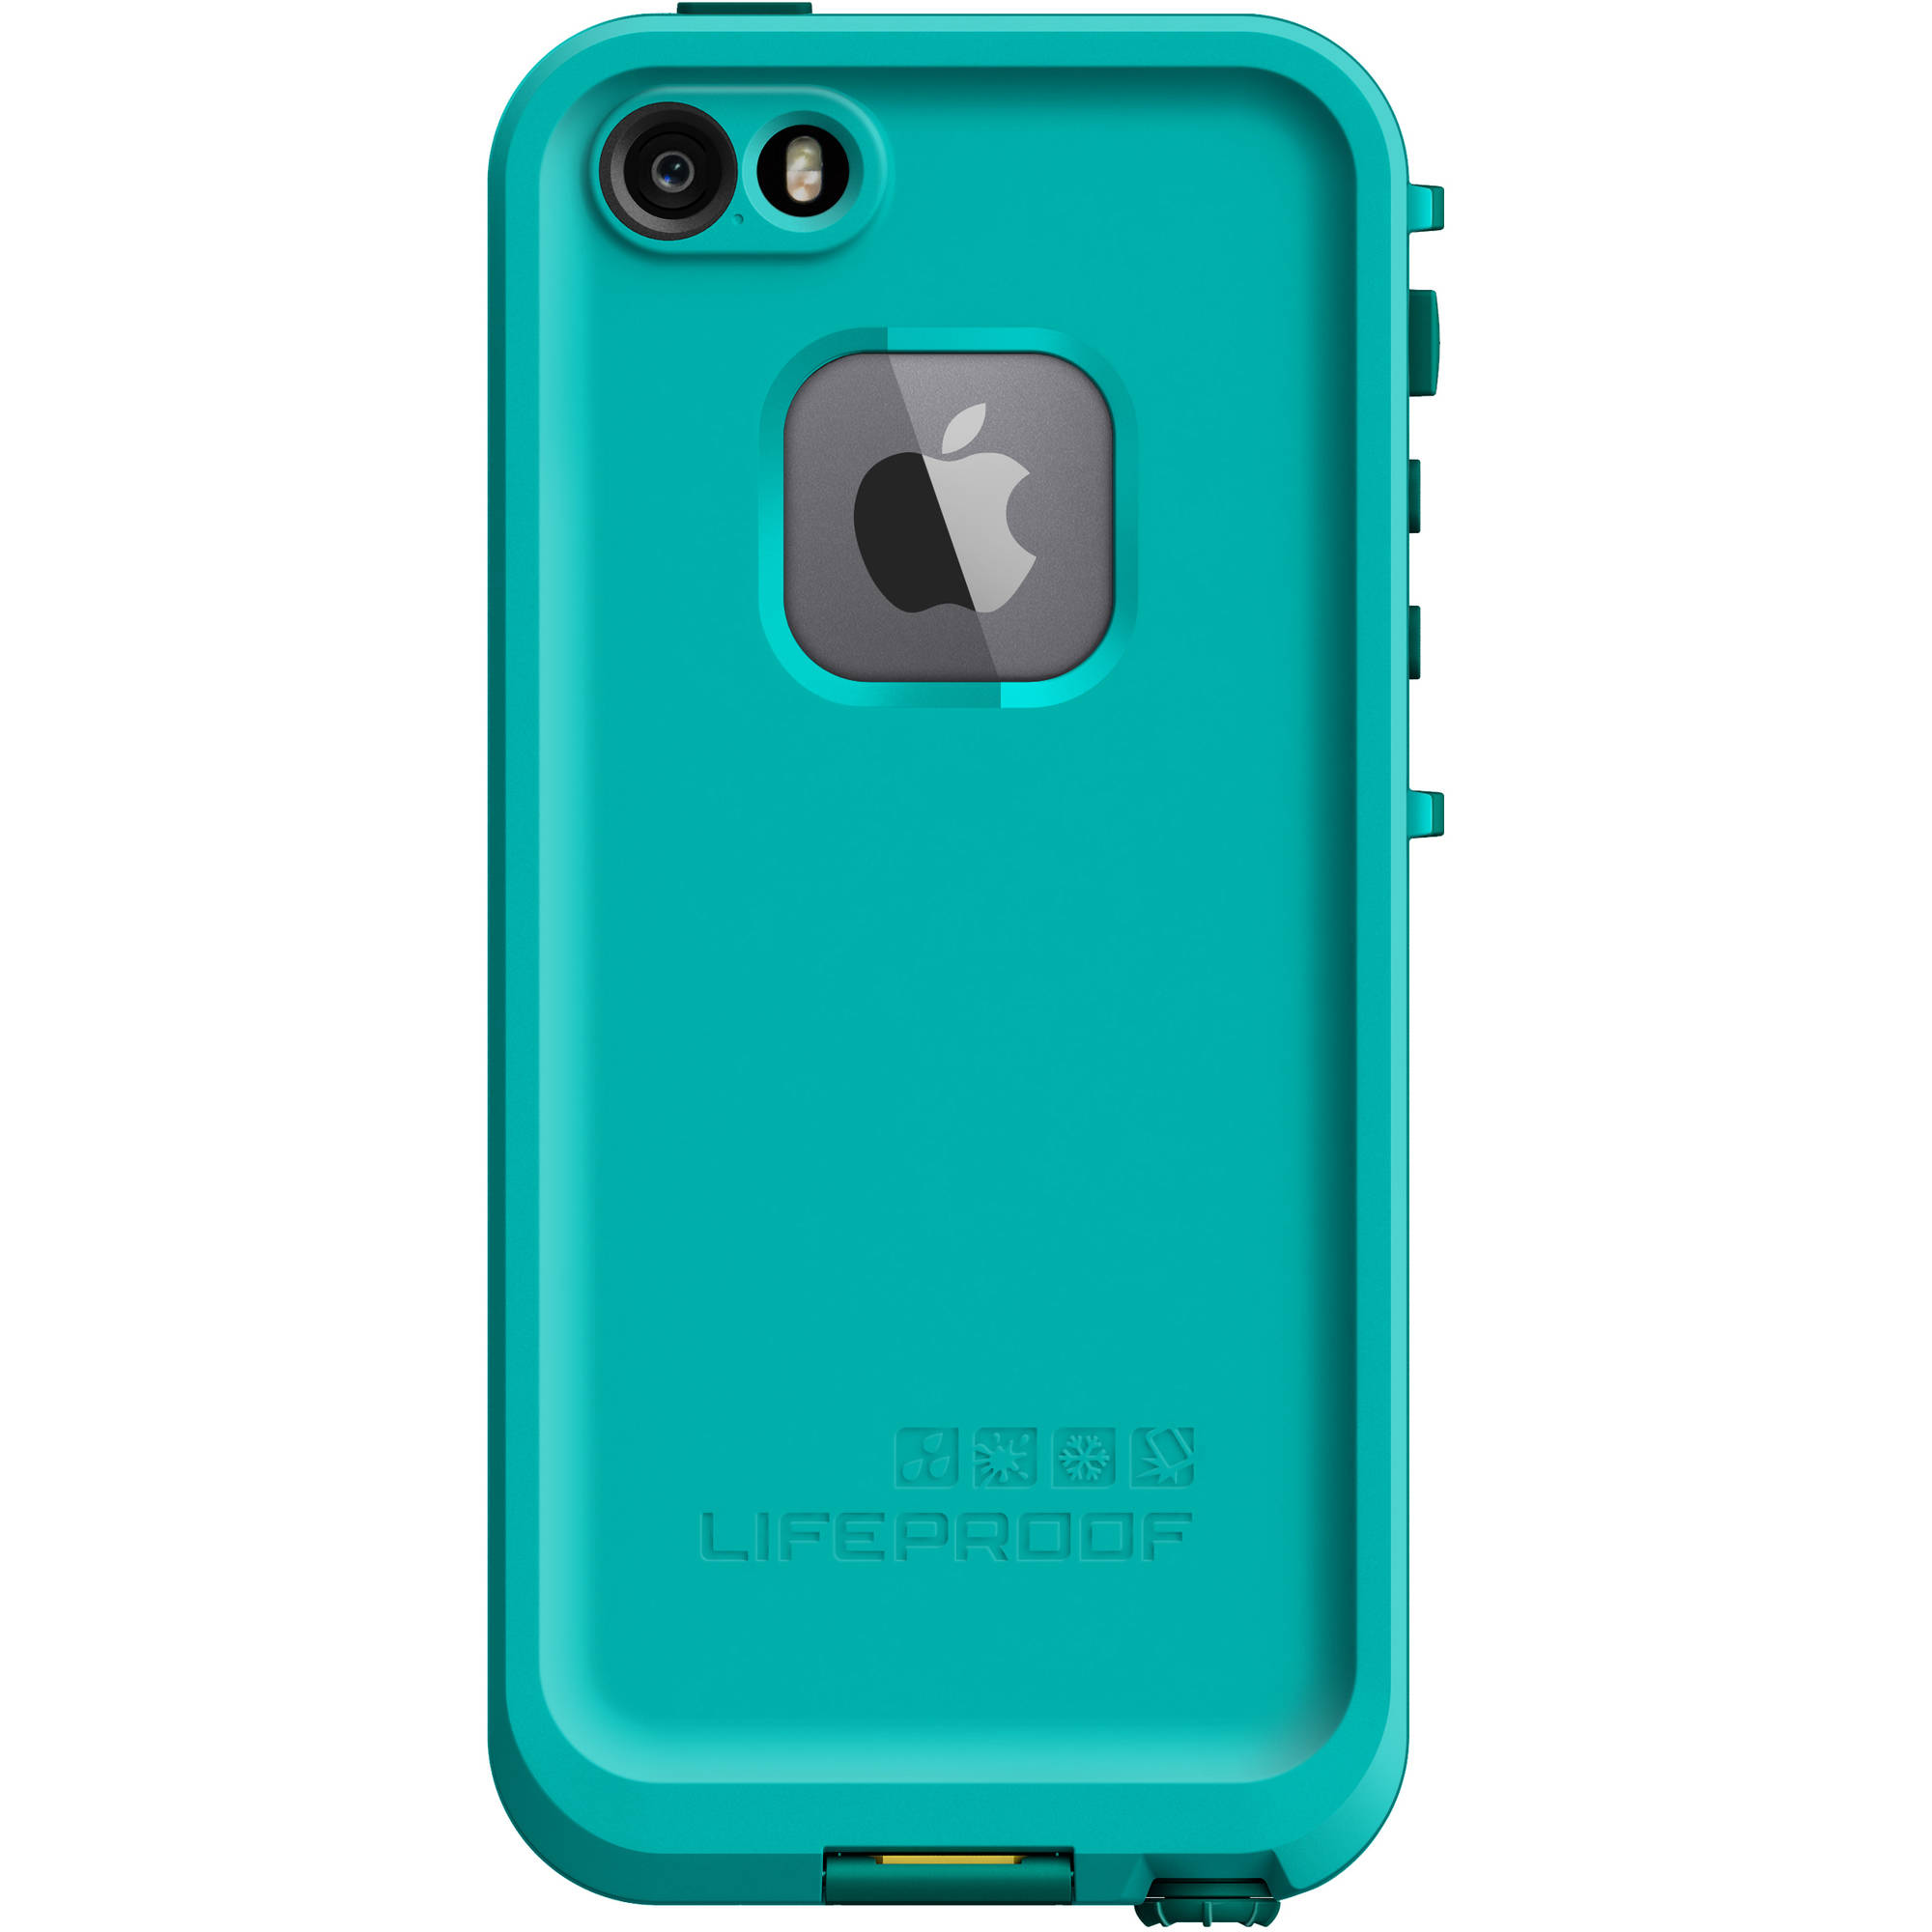 Teal Lifeproof Case Iphone